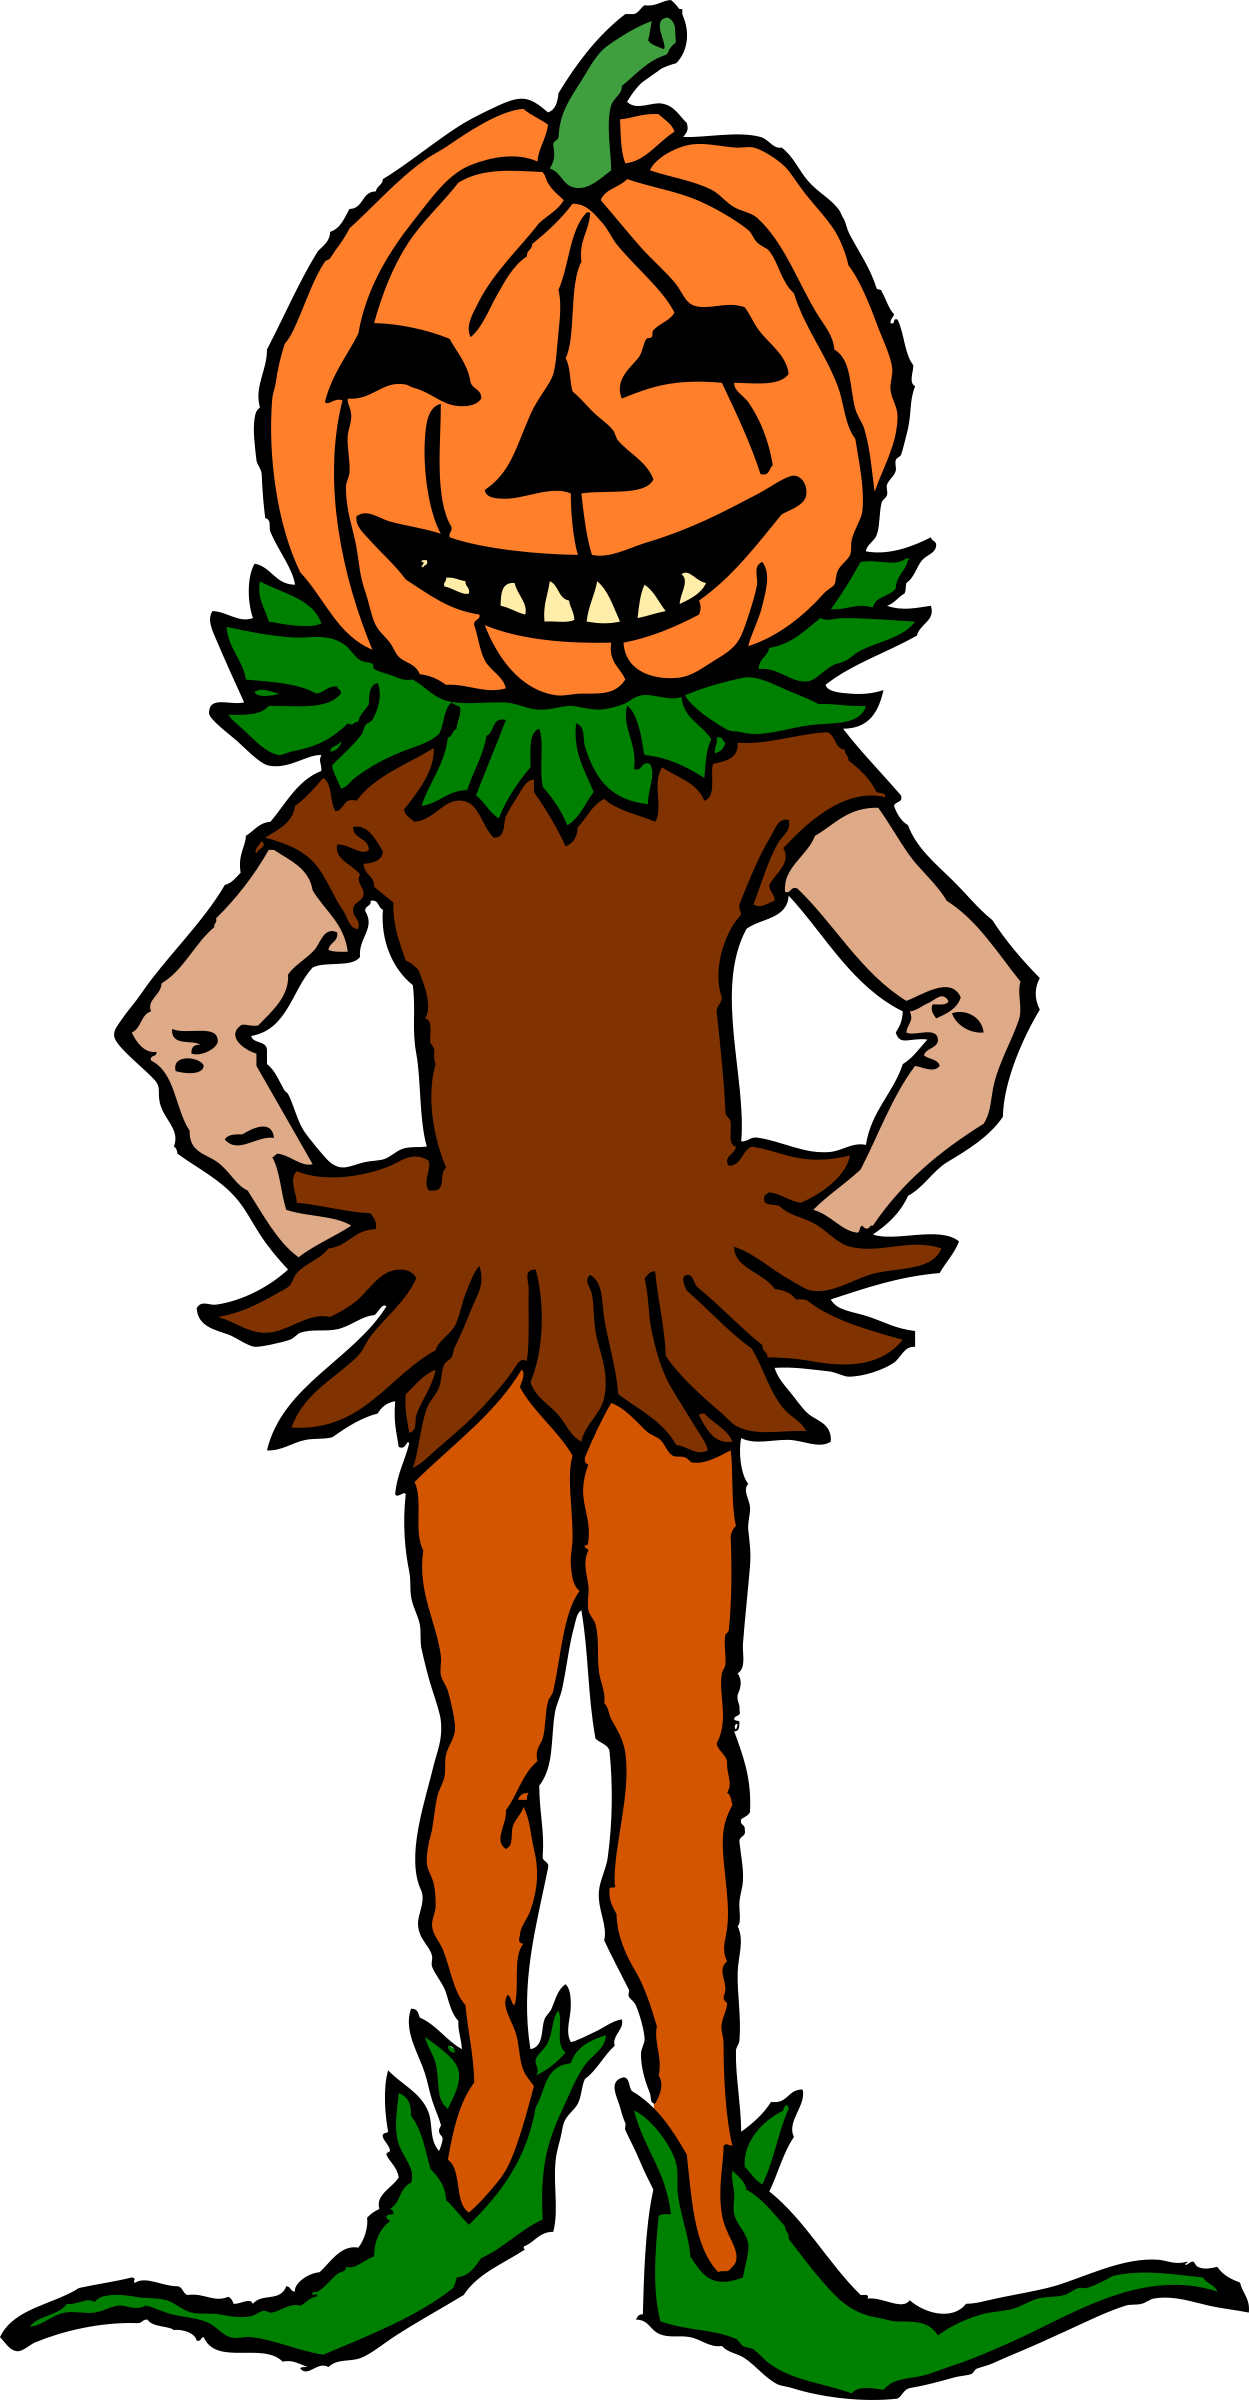 Pumpkin Boy Color Version by Gerald_G